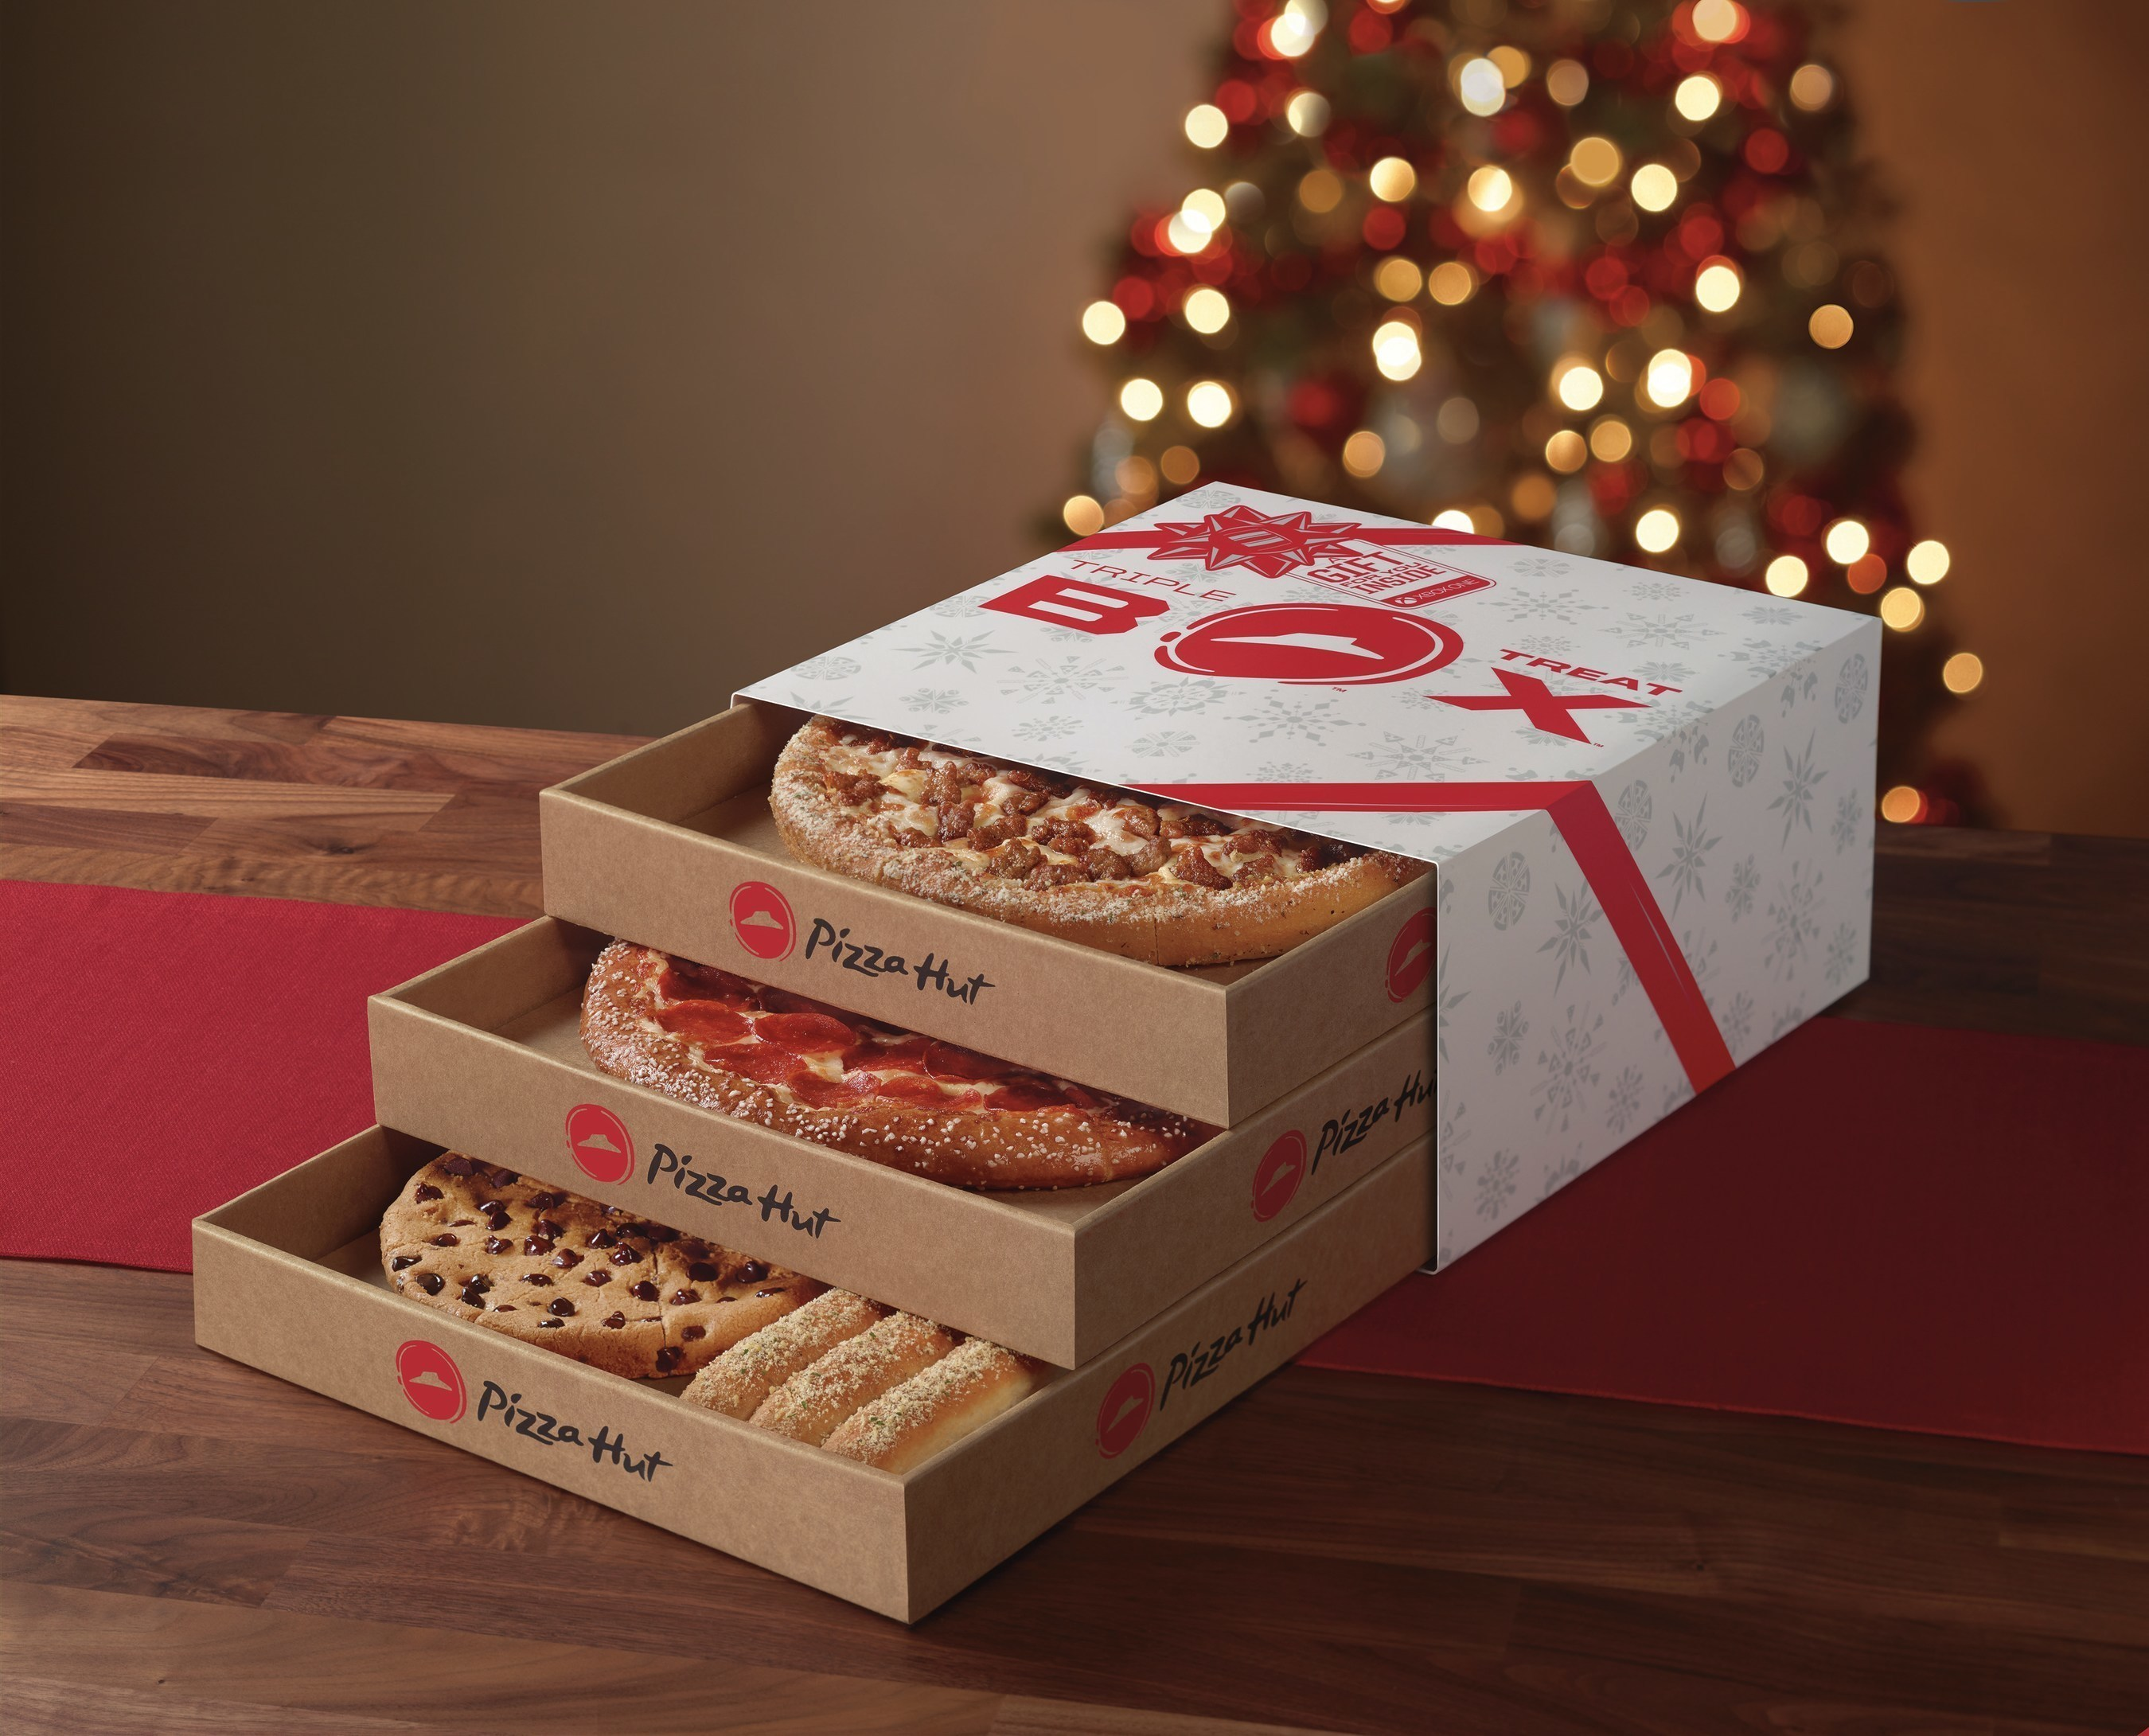 Perfect for get-togethers with friends and families looking to extend the fun of the holidays, the tri-level, holiday-themed Triple Treat Box from Pizza Hut will be available starting Nov. 7 for just $19.99 and includes two medium one-topping pizzas (available on Hand Tossed, Thin N' Crispy(R) or Pan), an order of breadsticks, a Hershey's Ultimate Chocolate Chip Cookie and a chance to win holiday fun for the whole family with an Xbox One S and custom Pizza Hut red controller.